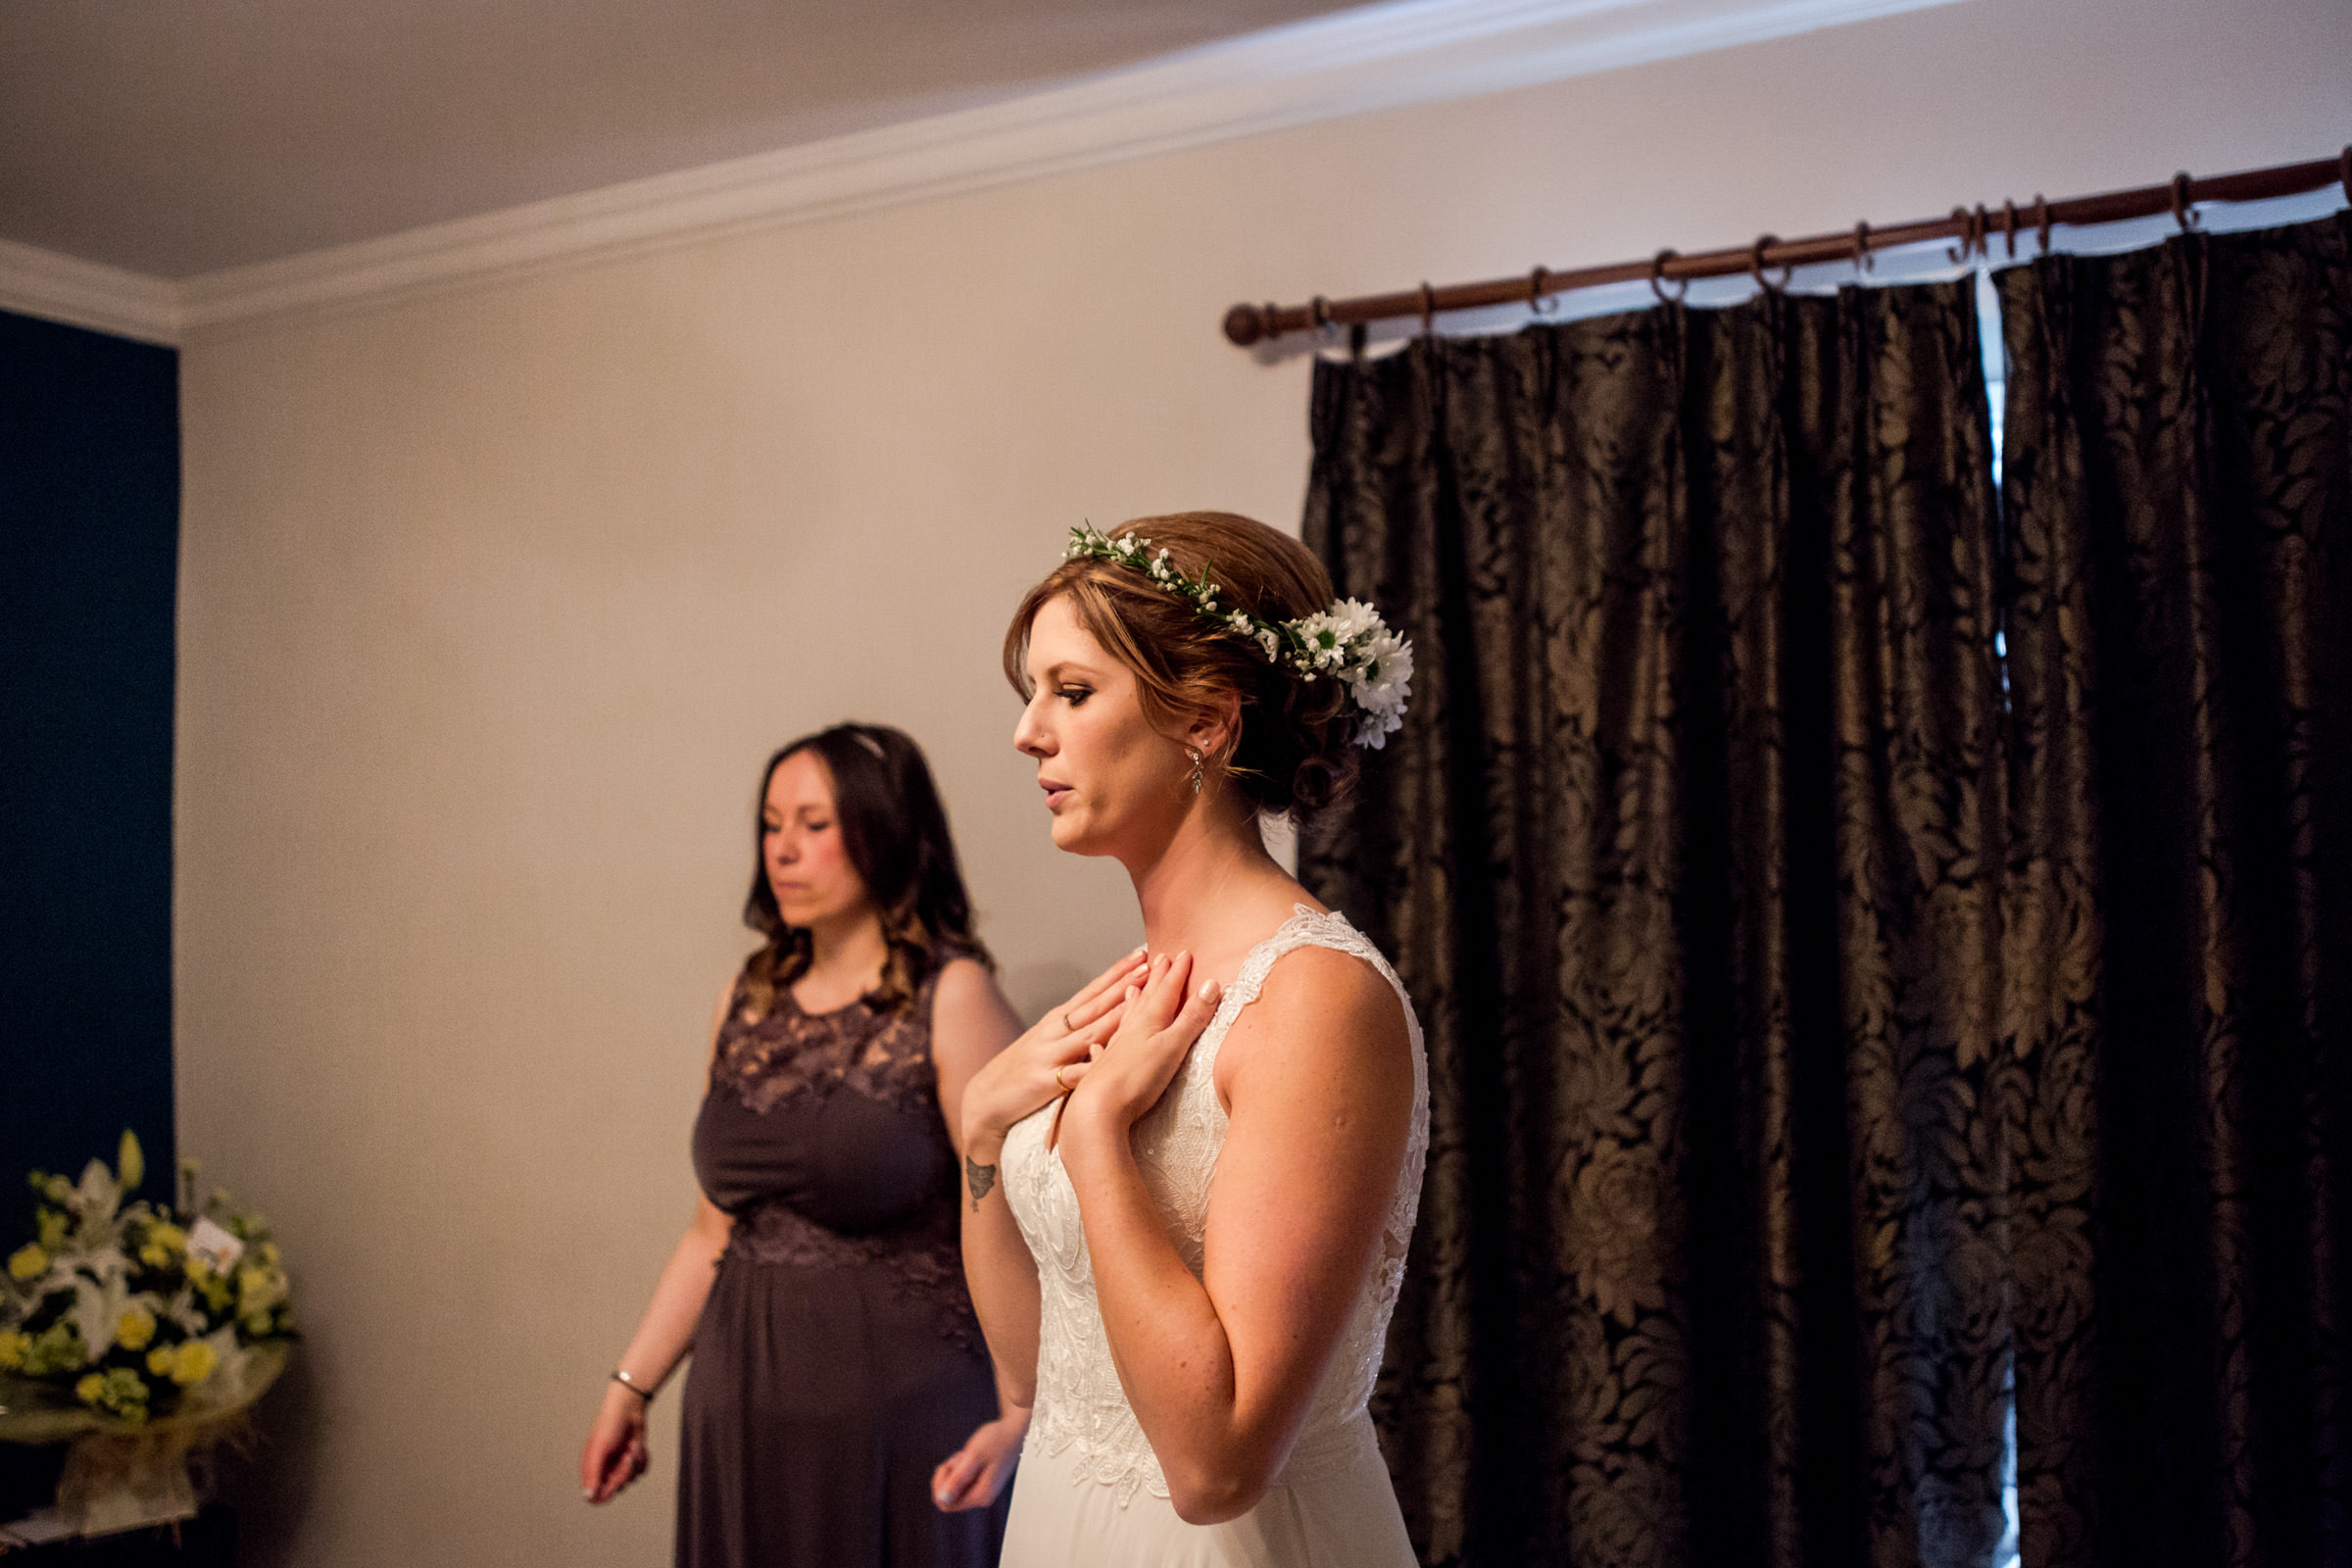 Wedding Photography Ludlow Shropshire - 004.jpg